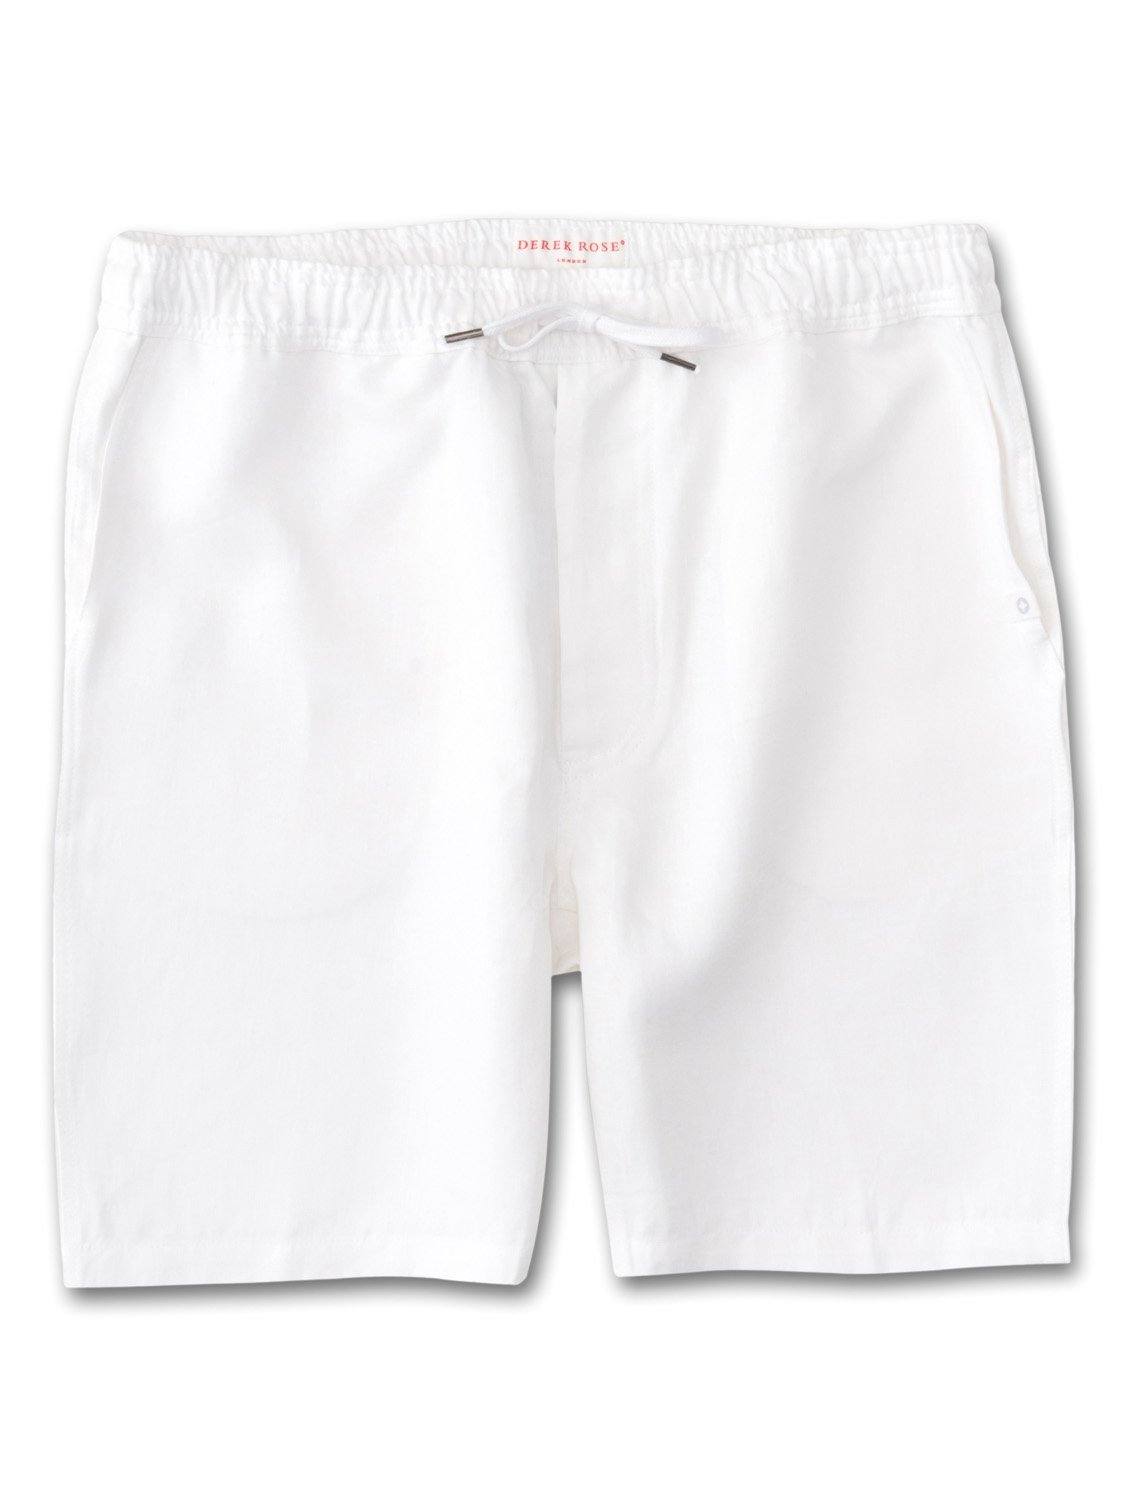 Men's Linen Shorts Sydney Linen White